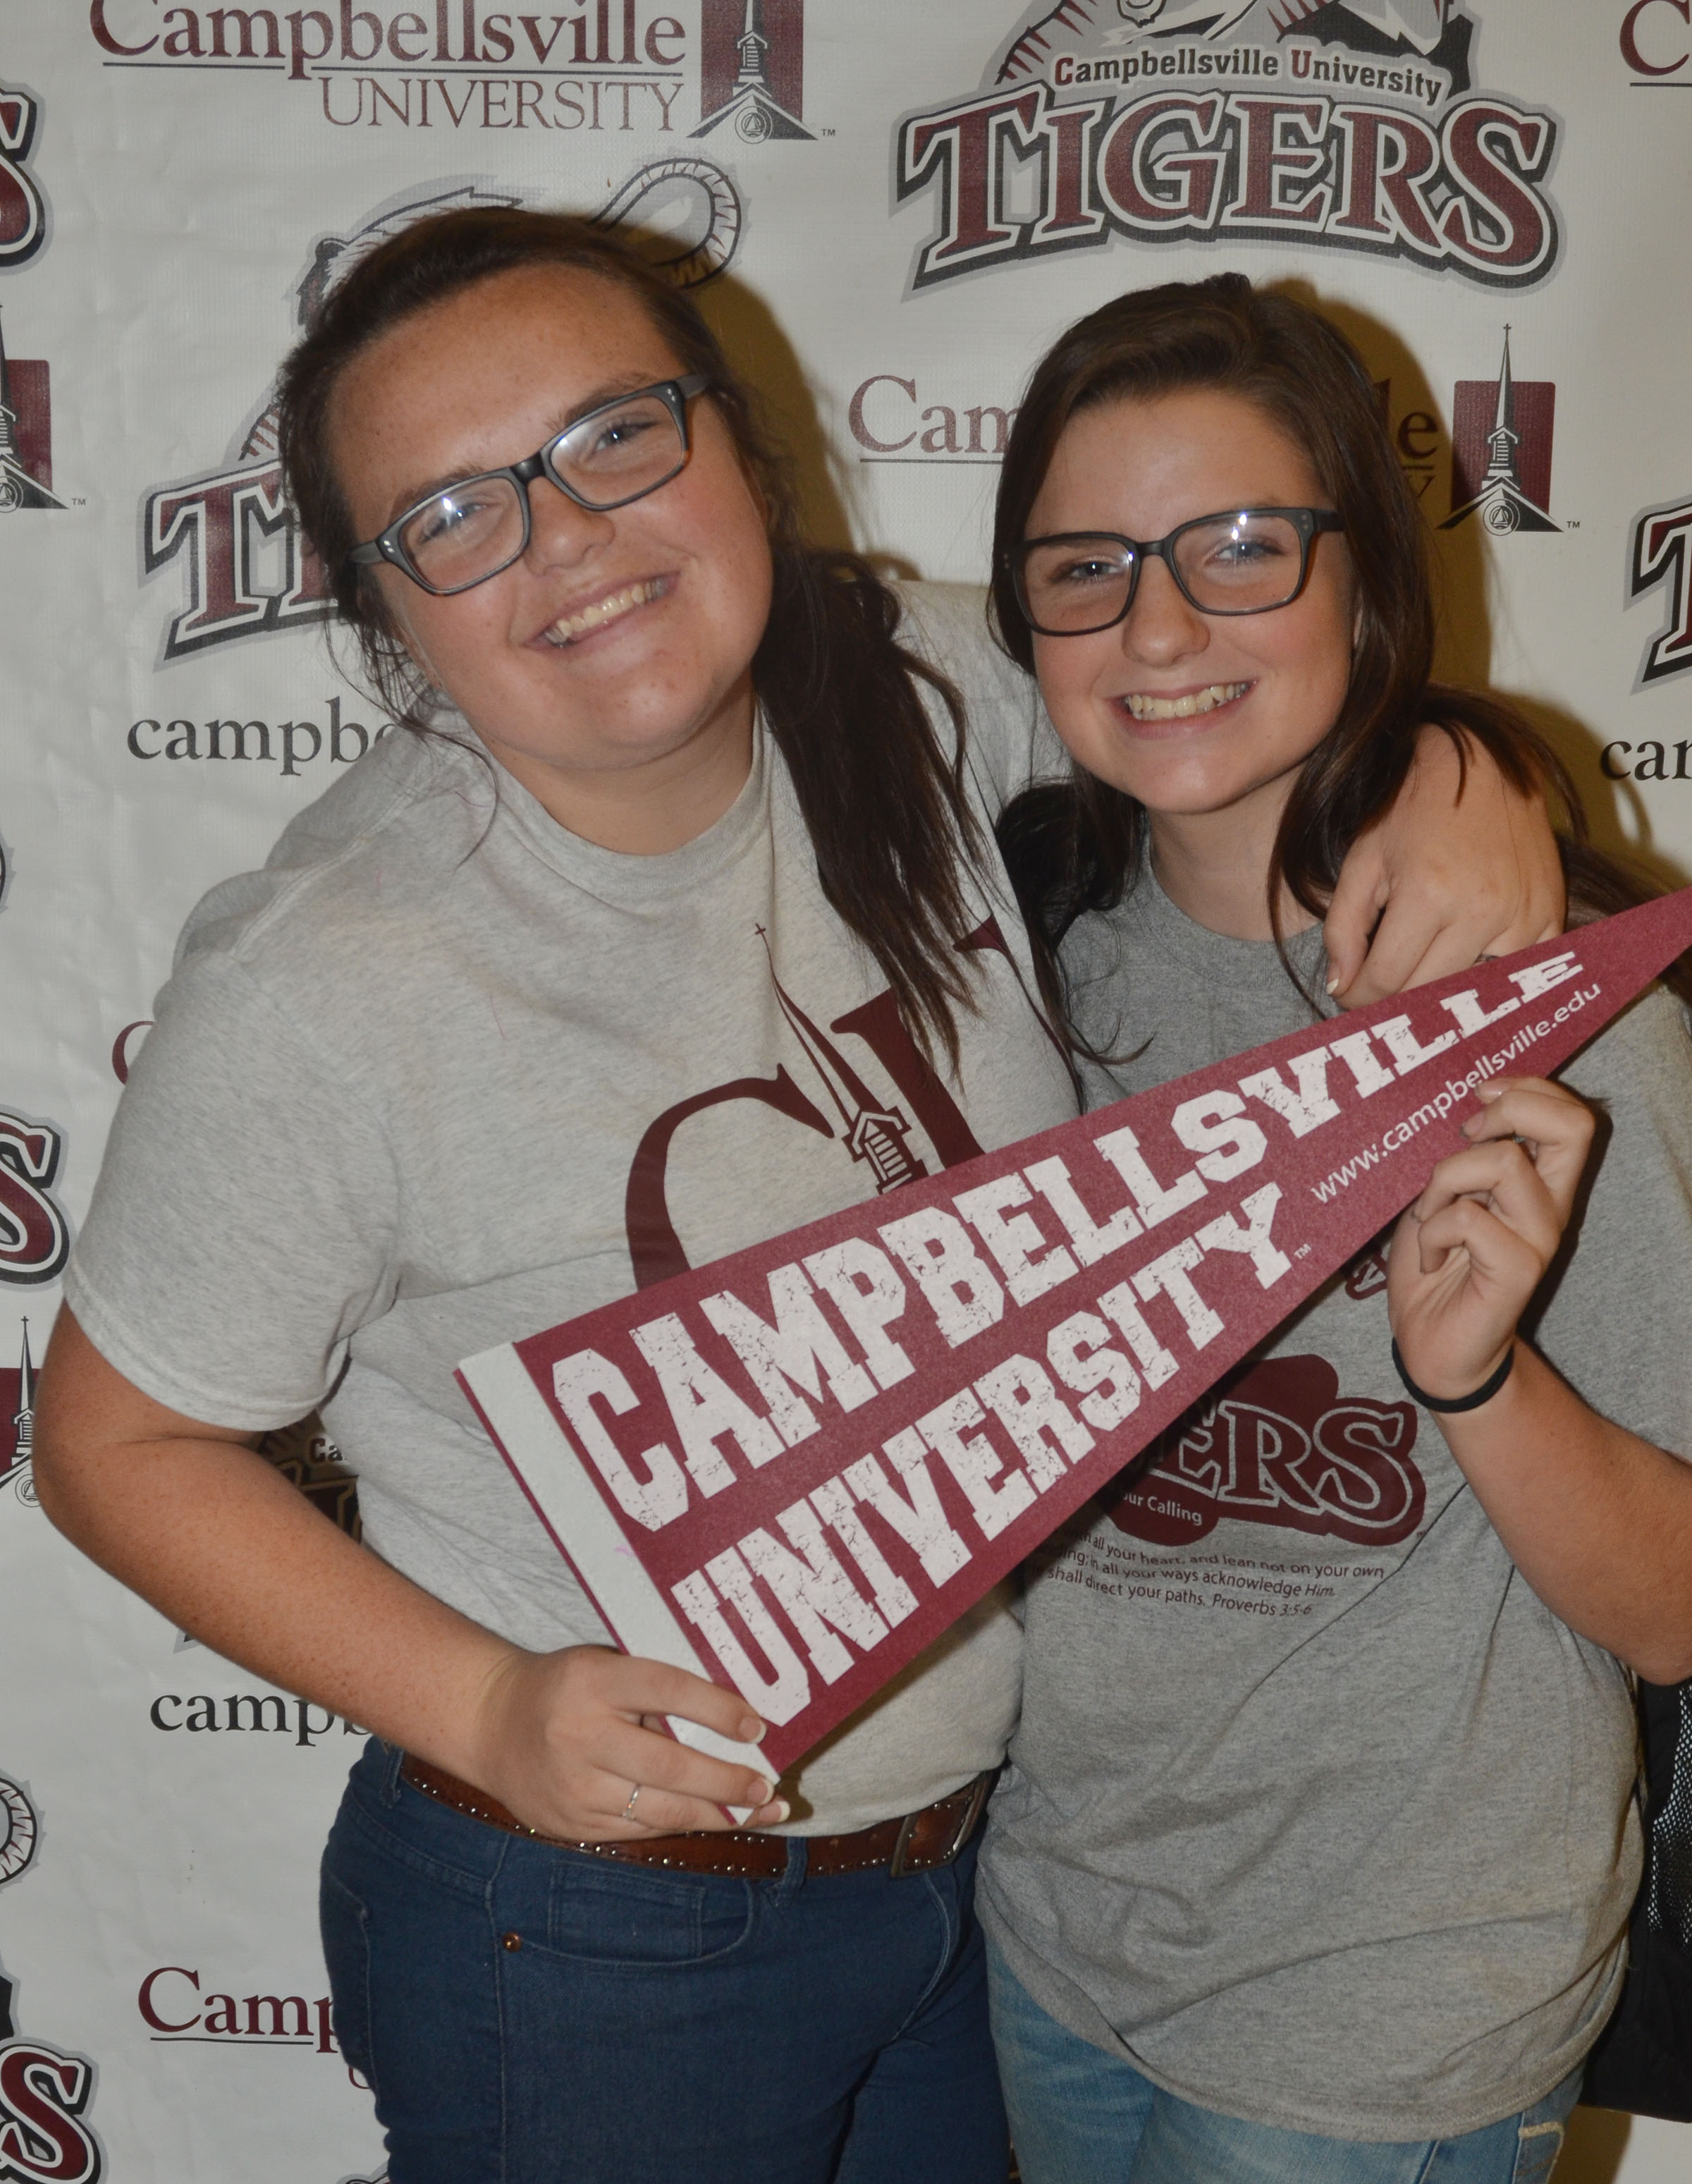 Masi Wilson, at left, who graduated from CHS in May 2015 and now attends CU, poses for a photo with her sister, Sydney, who is a freshman at CHS.